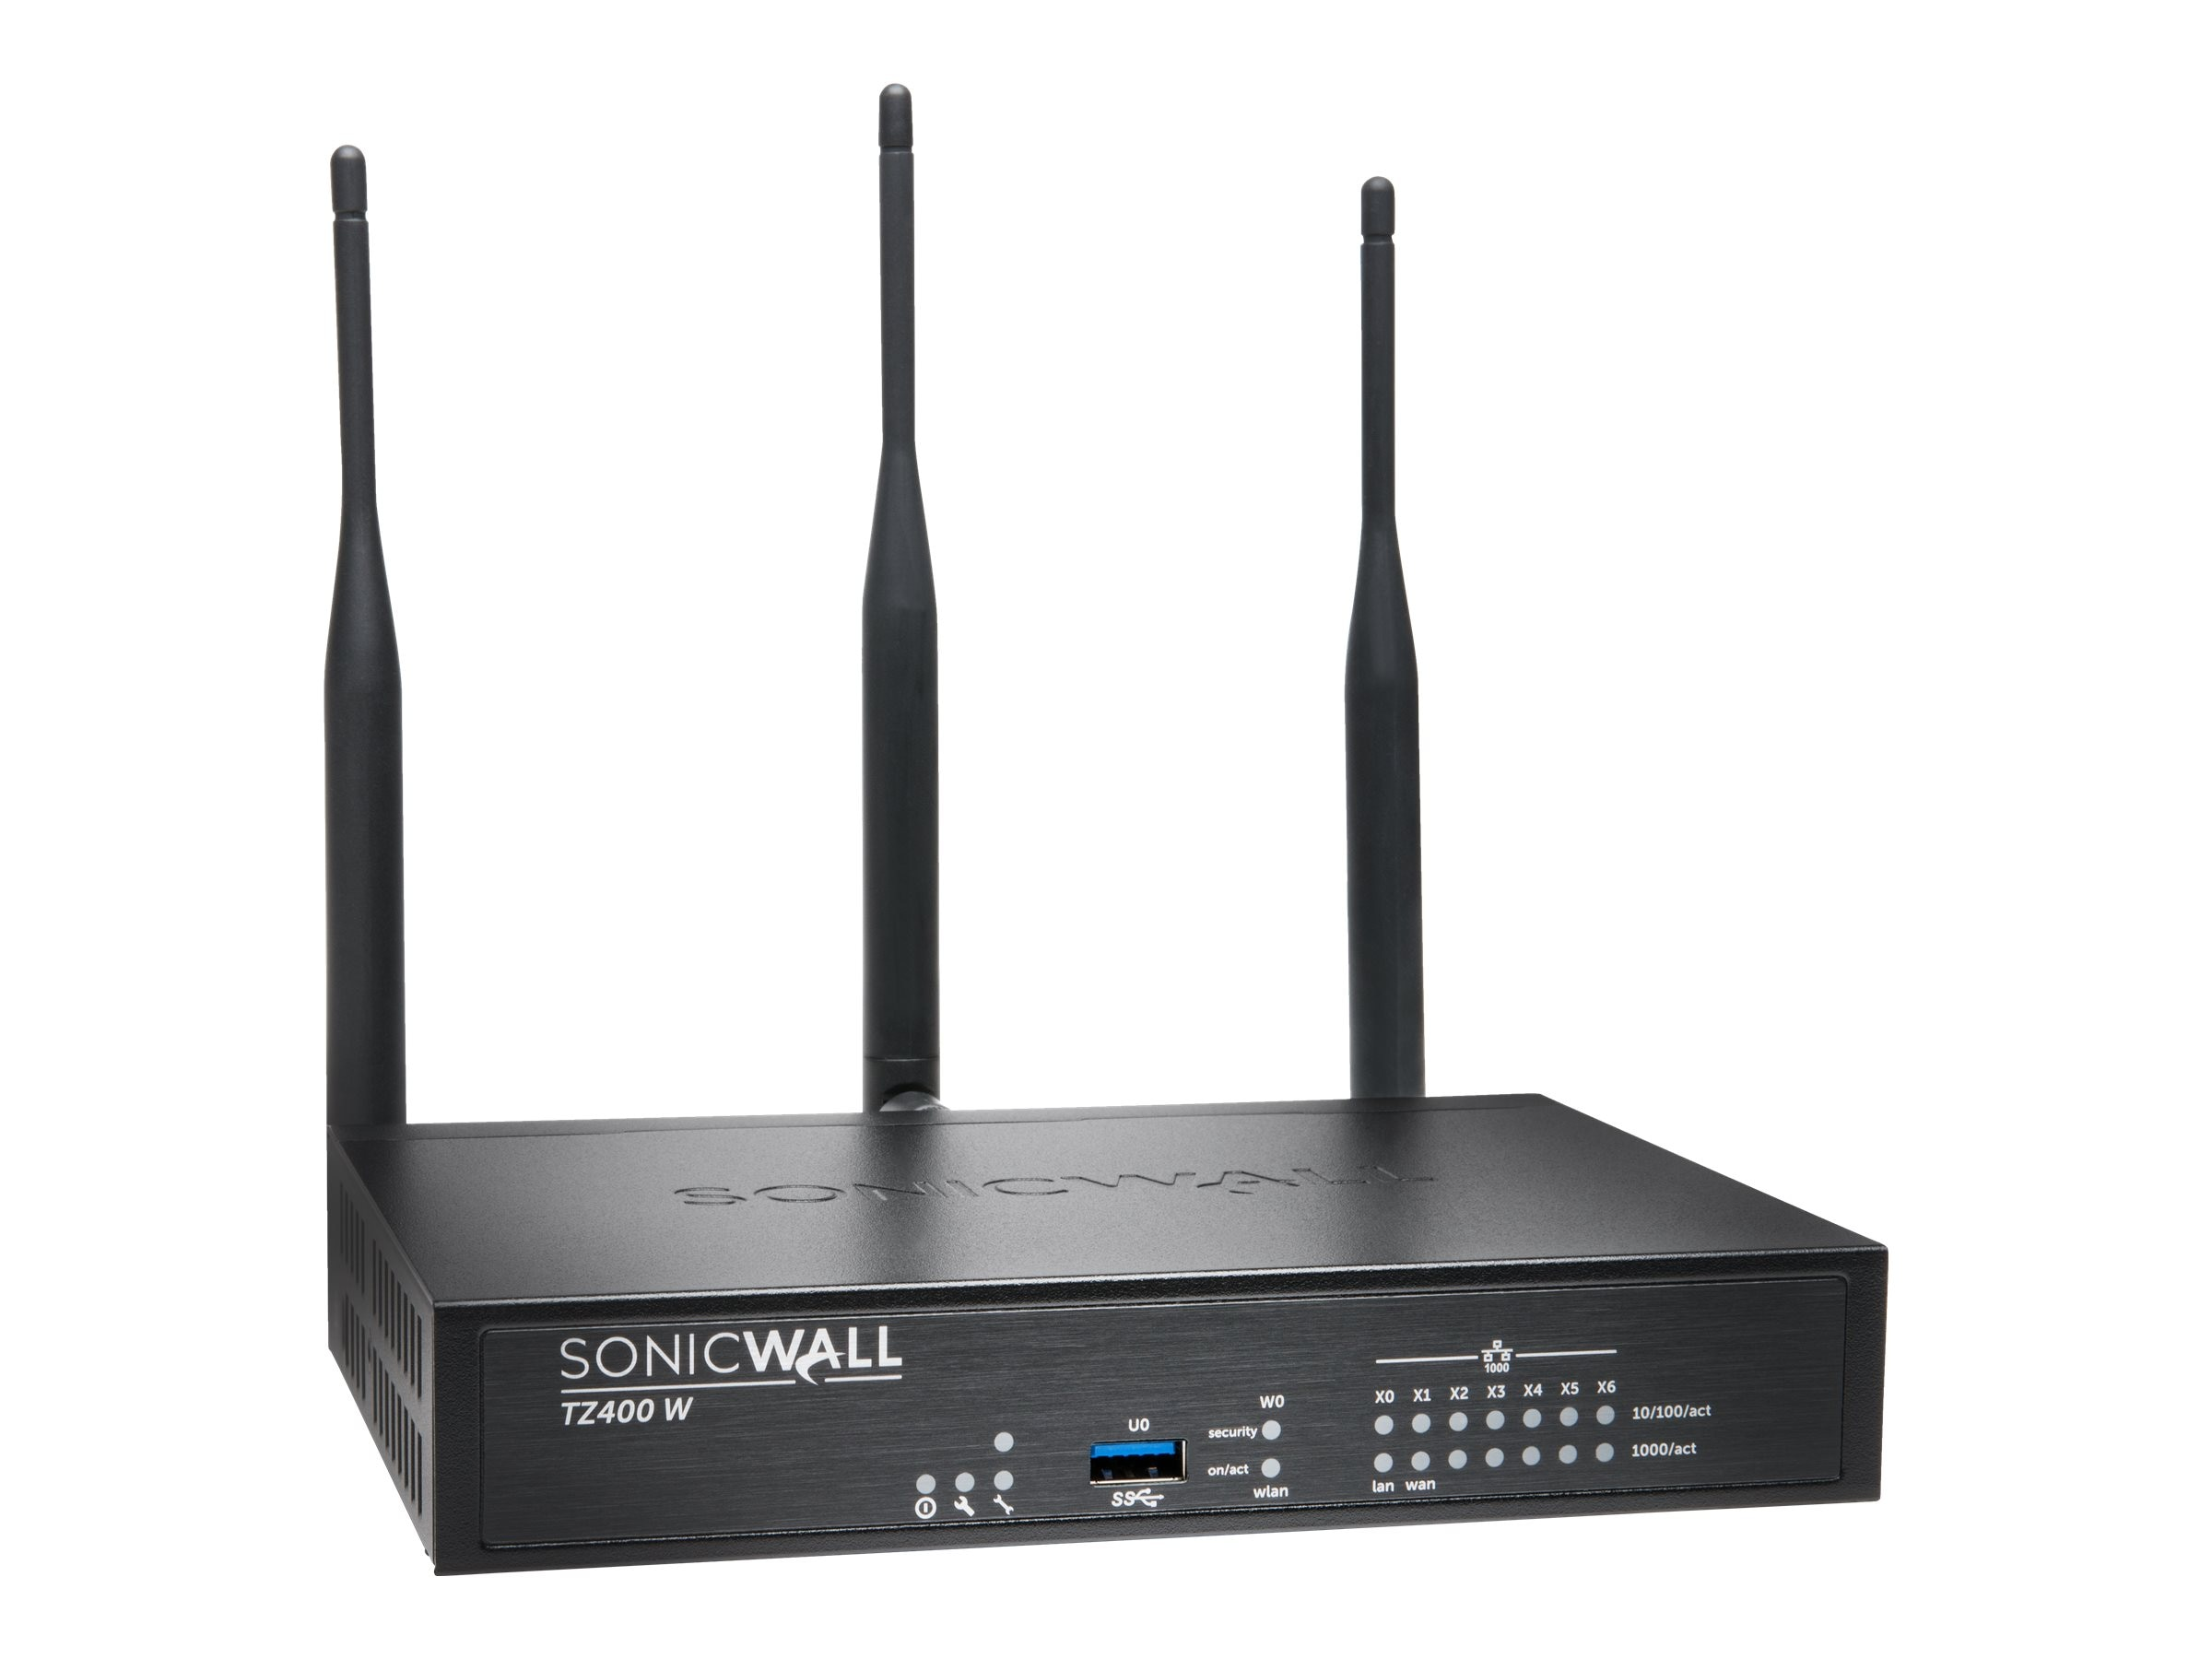 SonicWALL 01-SSC-0214 Image 3